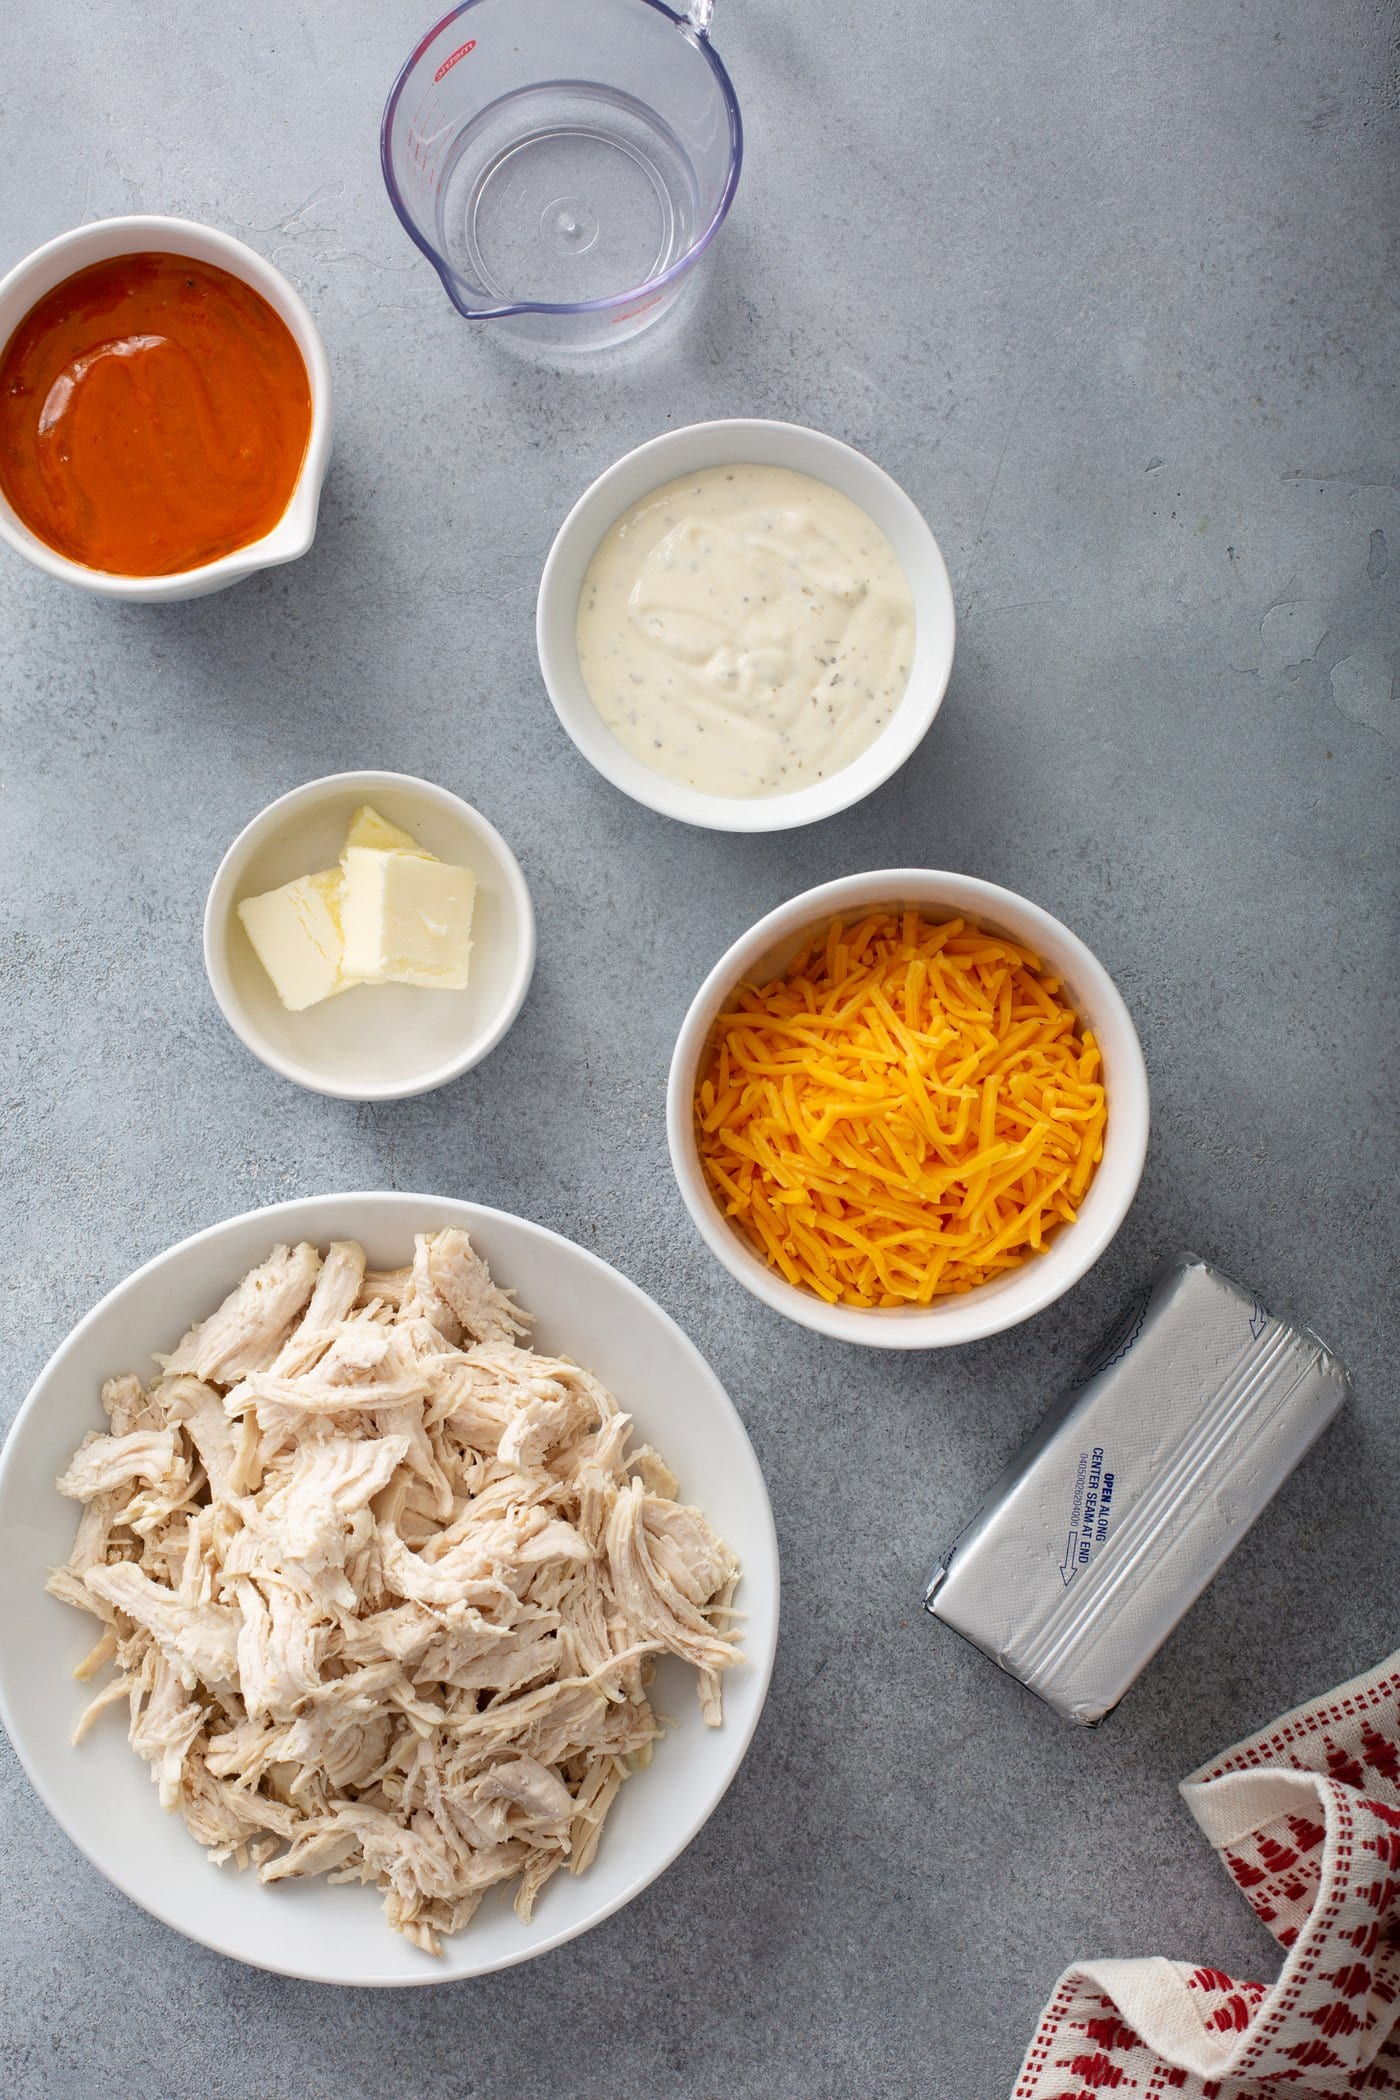 Small containers of shredded chicken, cheese, hot sauce, ranch dressing and butter.